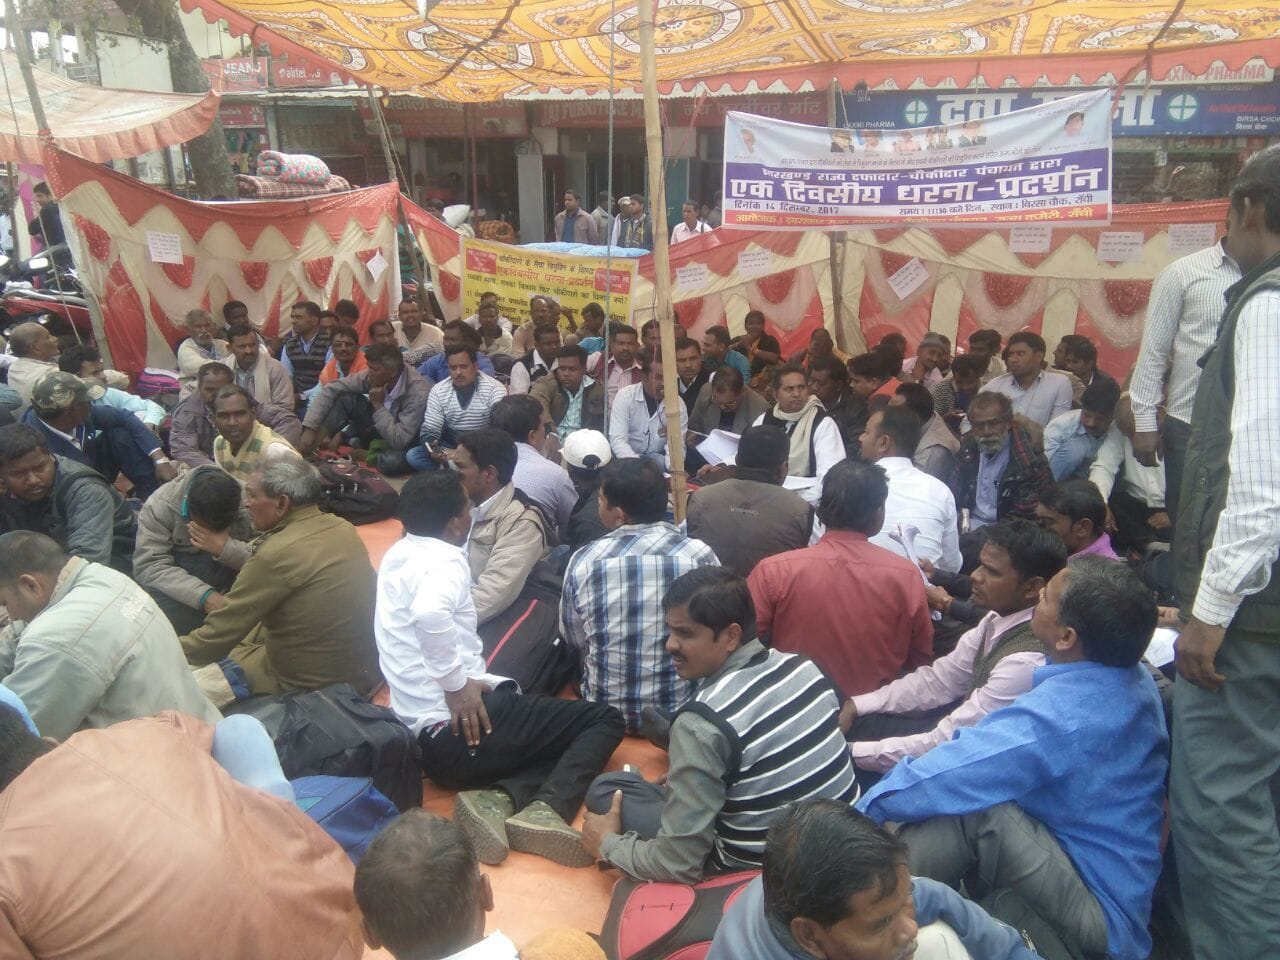 <p>Members of the Jharkhand&#39;s Dafadar-Chaukidaar Panchayat organised a &#39;dharna&#39; at Birsa Chowk, Ranchi for their various demands.</p>